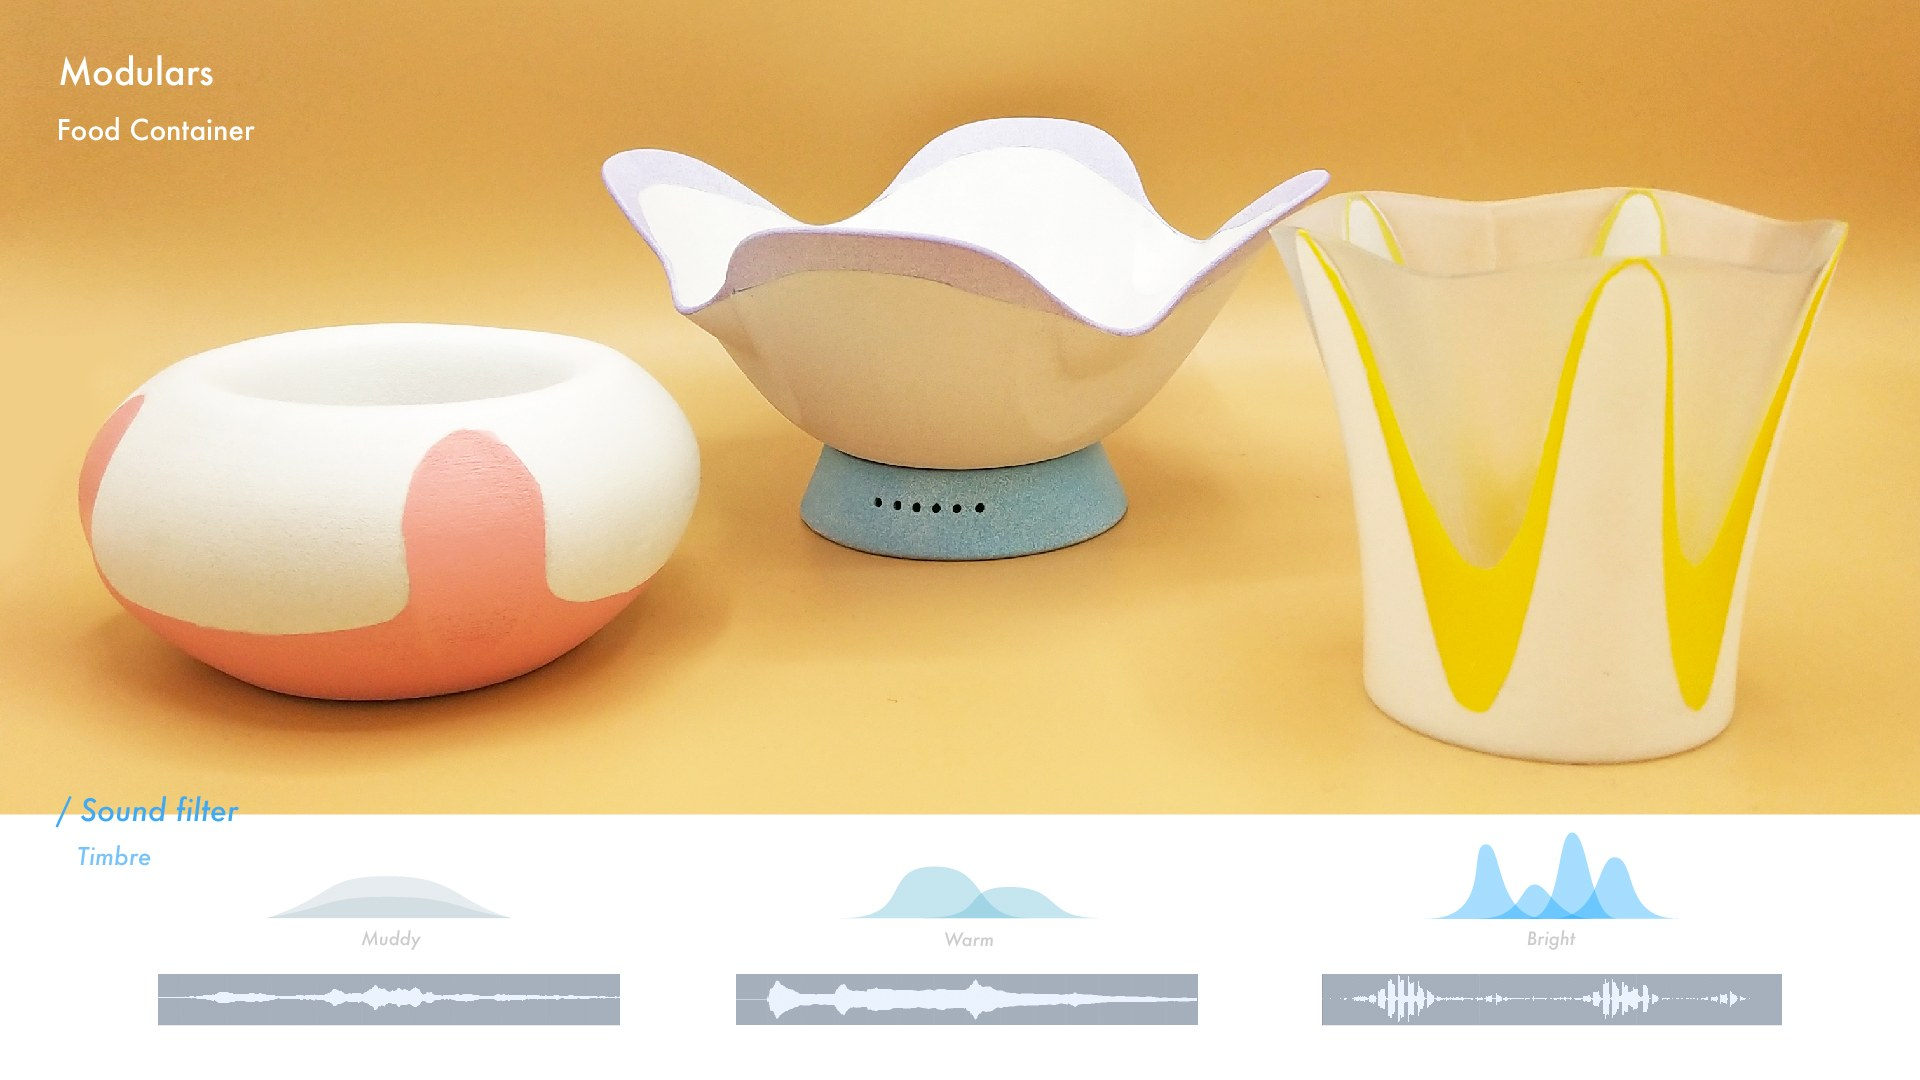 2. Food Containers - Sound Filter